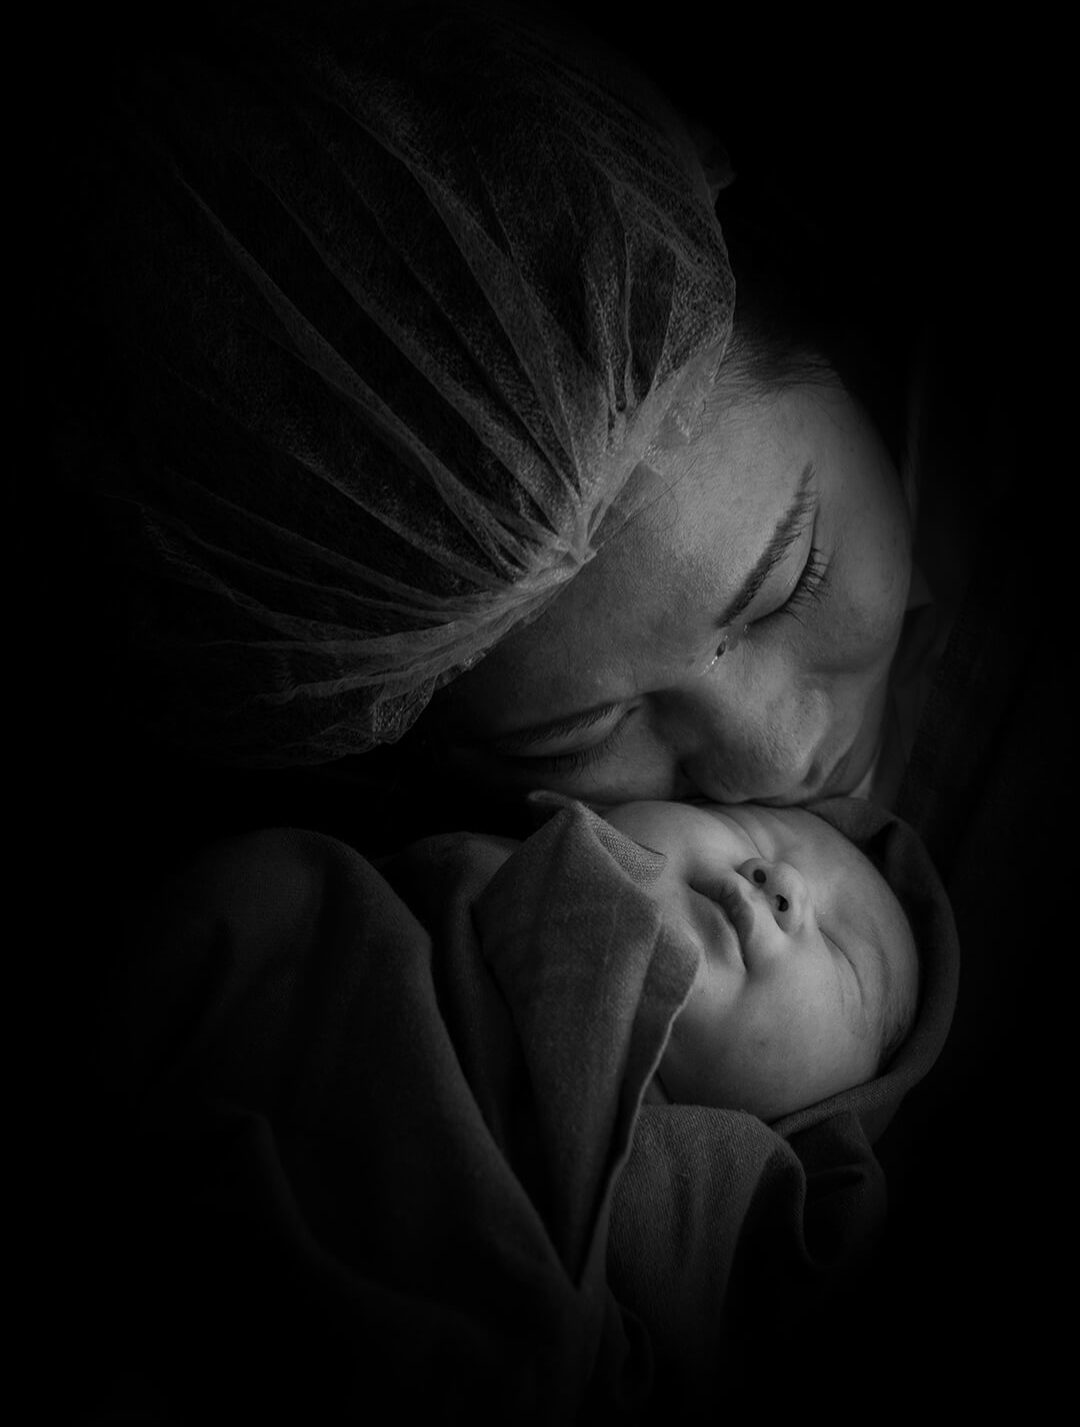 Birth Photography Delhi Shipra Amit Chhabra